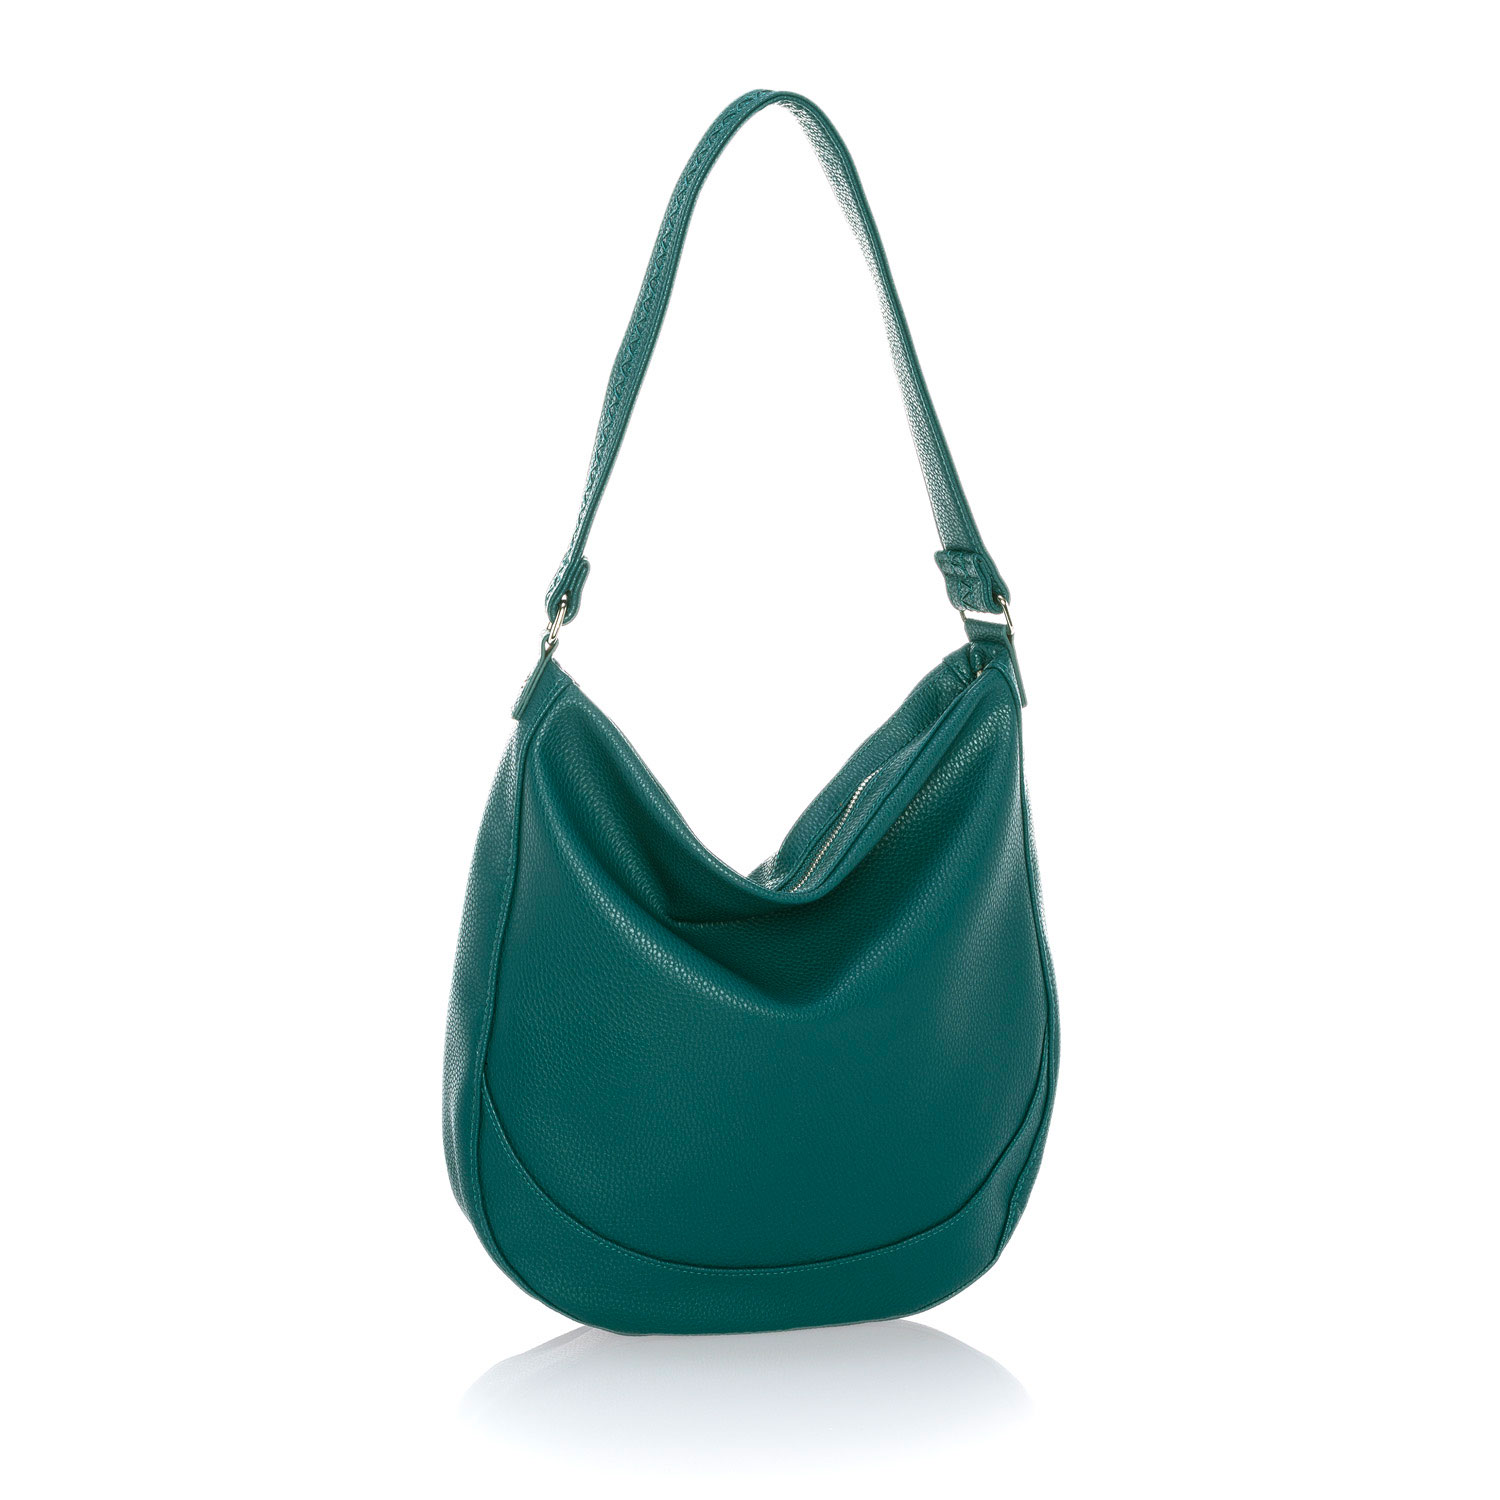 ca6188550 Calypso Coral Pebble - Midway Hobo - Thirty-One Gifts - Affordable Purses,  Totes & Bags